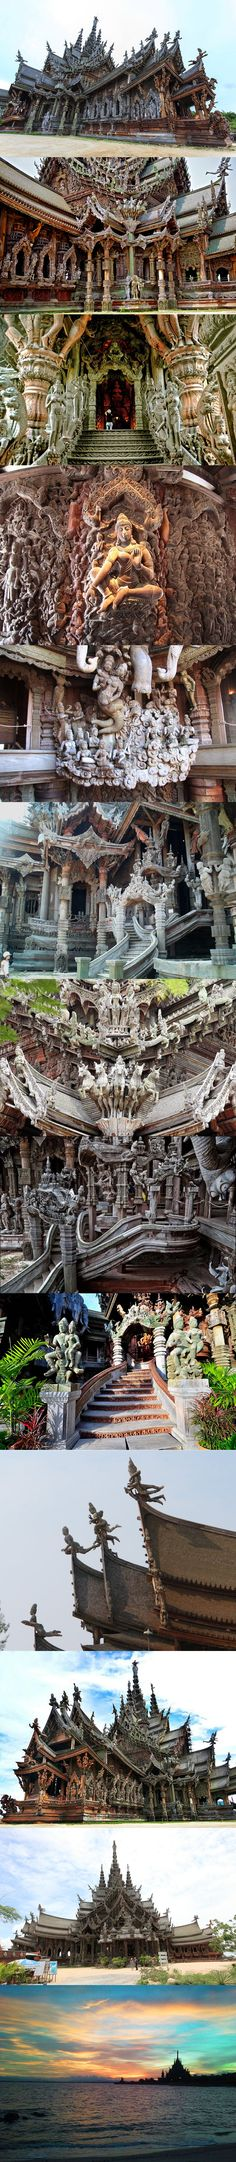 Sanctuary of Truth ( Wang Boran / Prasat Mai). The sanctuary is an all-wood building temple in Pattaya, Thailand, filled with sculptures based on traditional Buddhist and Hindu motifs.